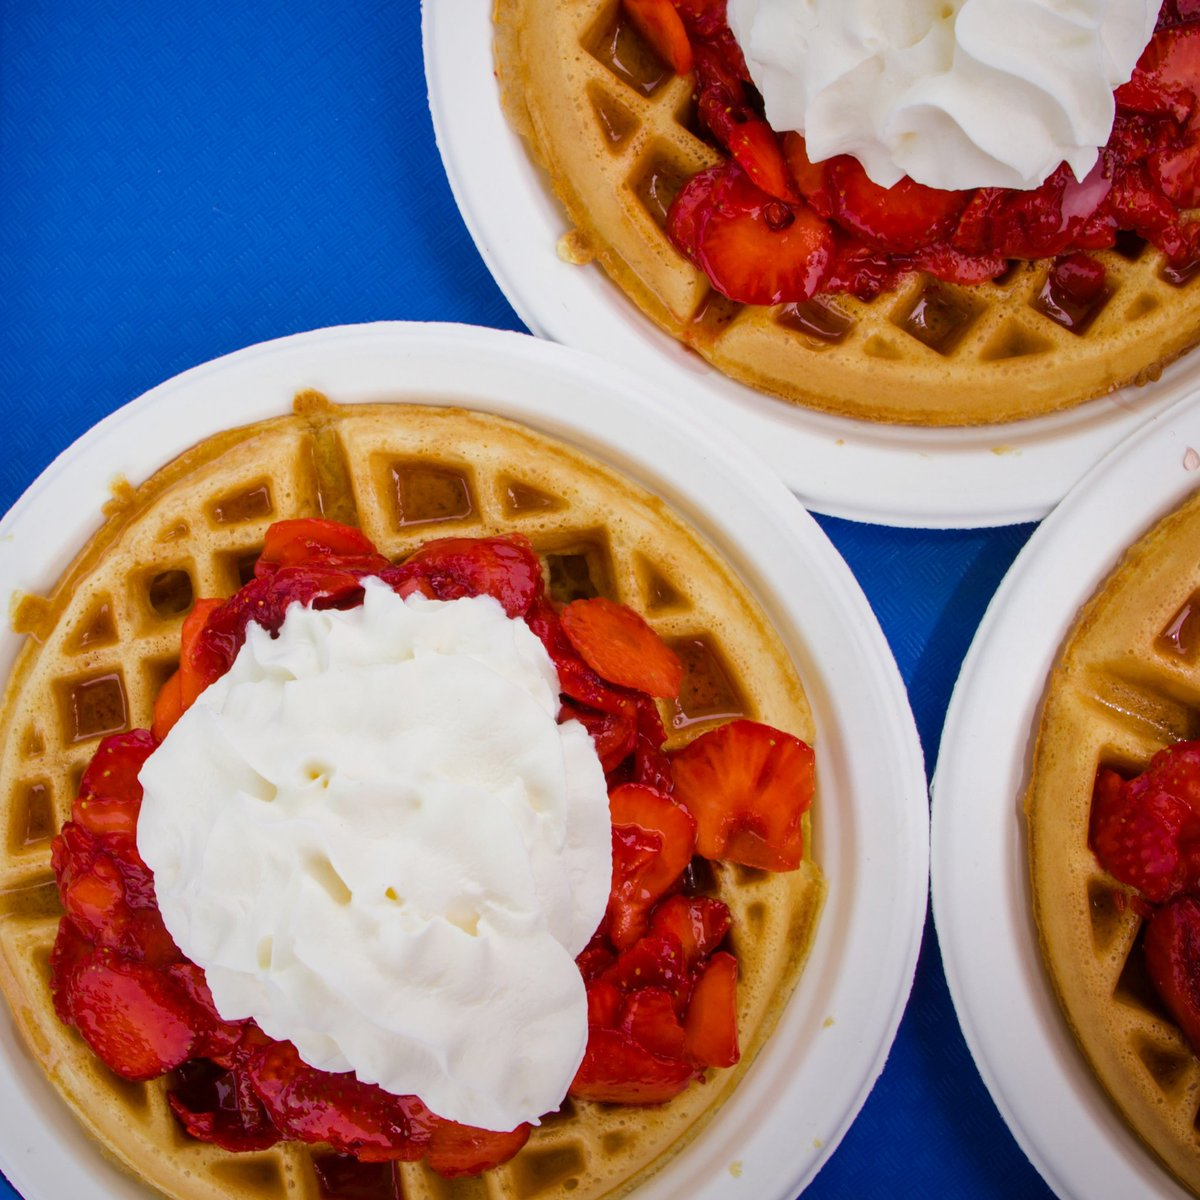 Have you tried the waffles from @KrauseBerryFarm? They are TO DIE FOR!  #CircleFarmTour #LangleyBC #bcberryfarm #Strawberry #locallyobsessed #bcfarmfresh #wafflelove https://t.co/PtAWSqgs0p